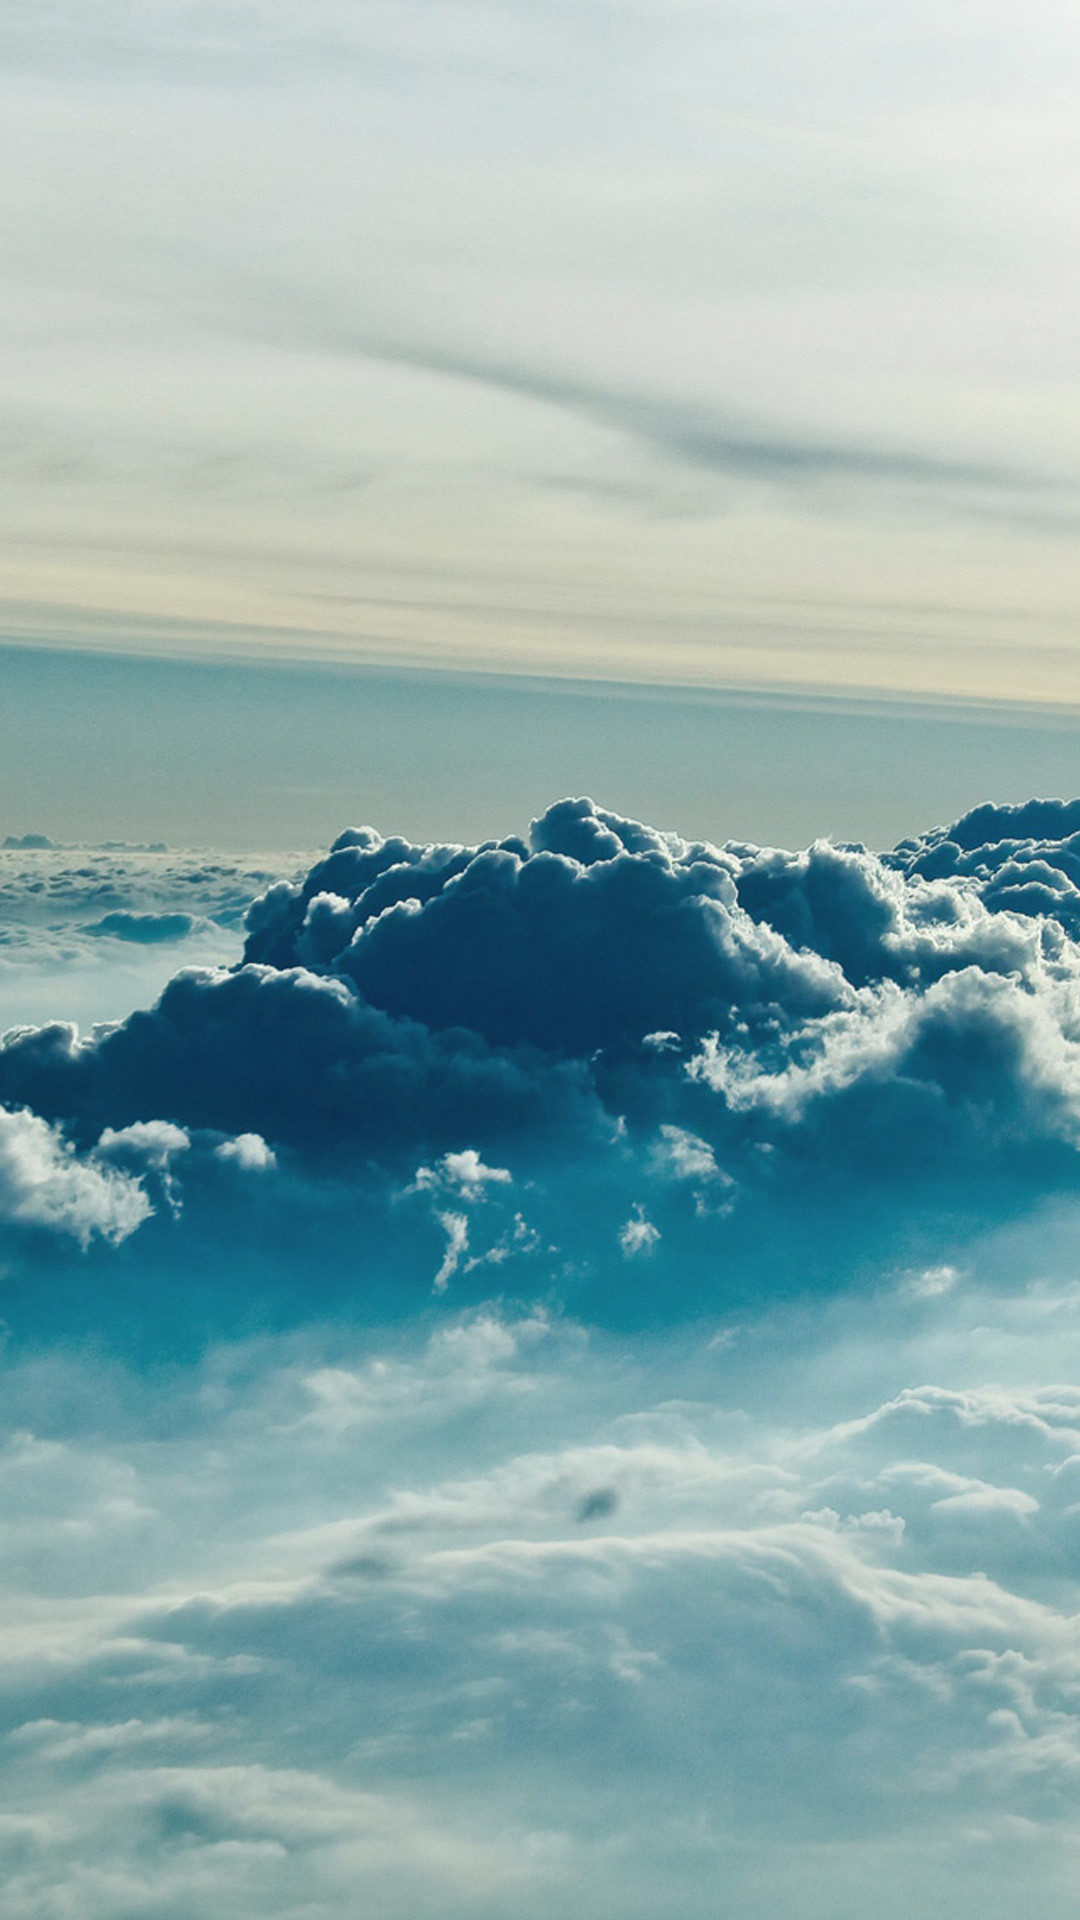 Free Cloud Backgrounds Wallpapers, Backgrounds, Images, Art Photos